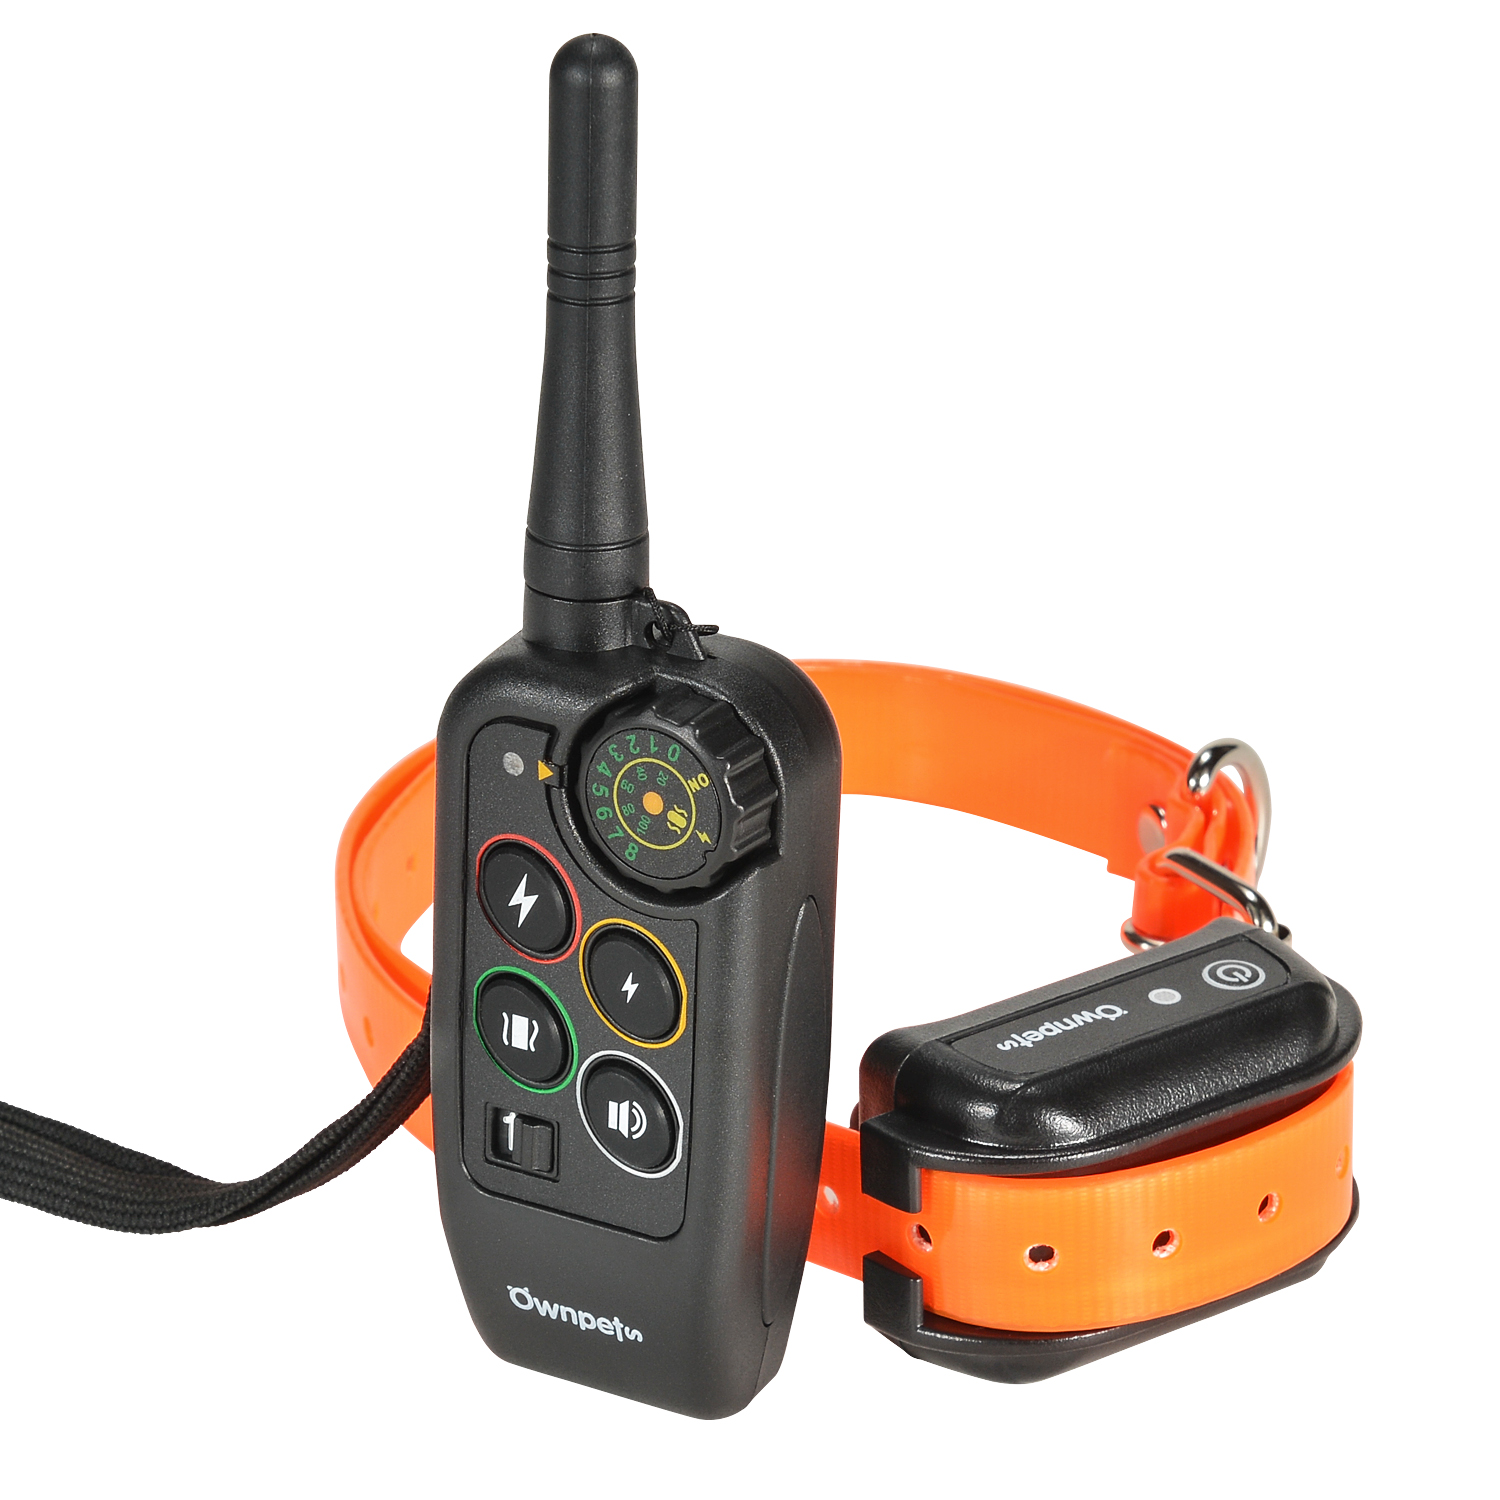 Ownpets Dog Training Collar with remote,Rechargeable and Waterproof,1000 yards Range for All Size Dogs by